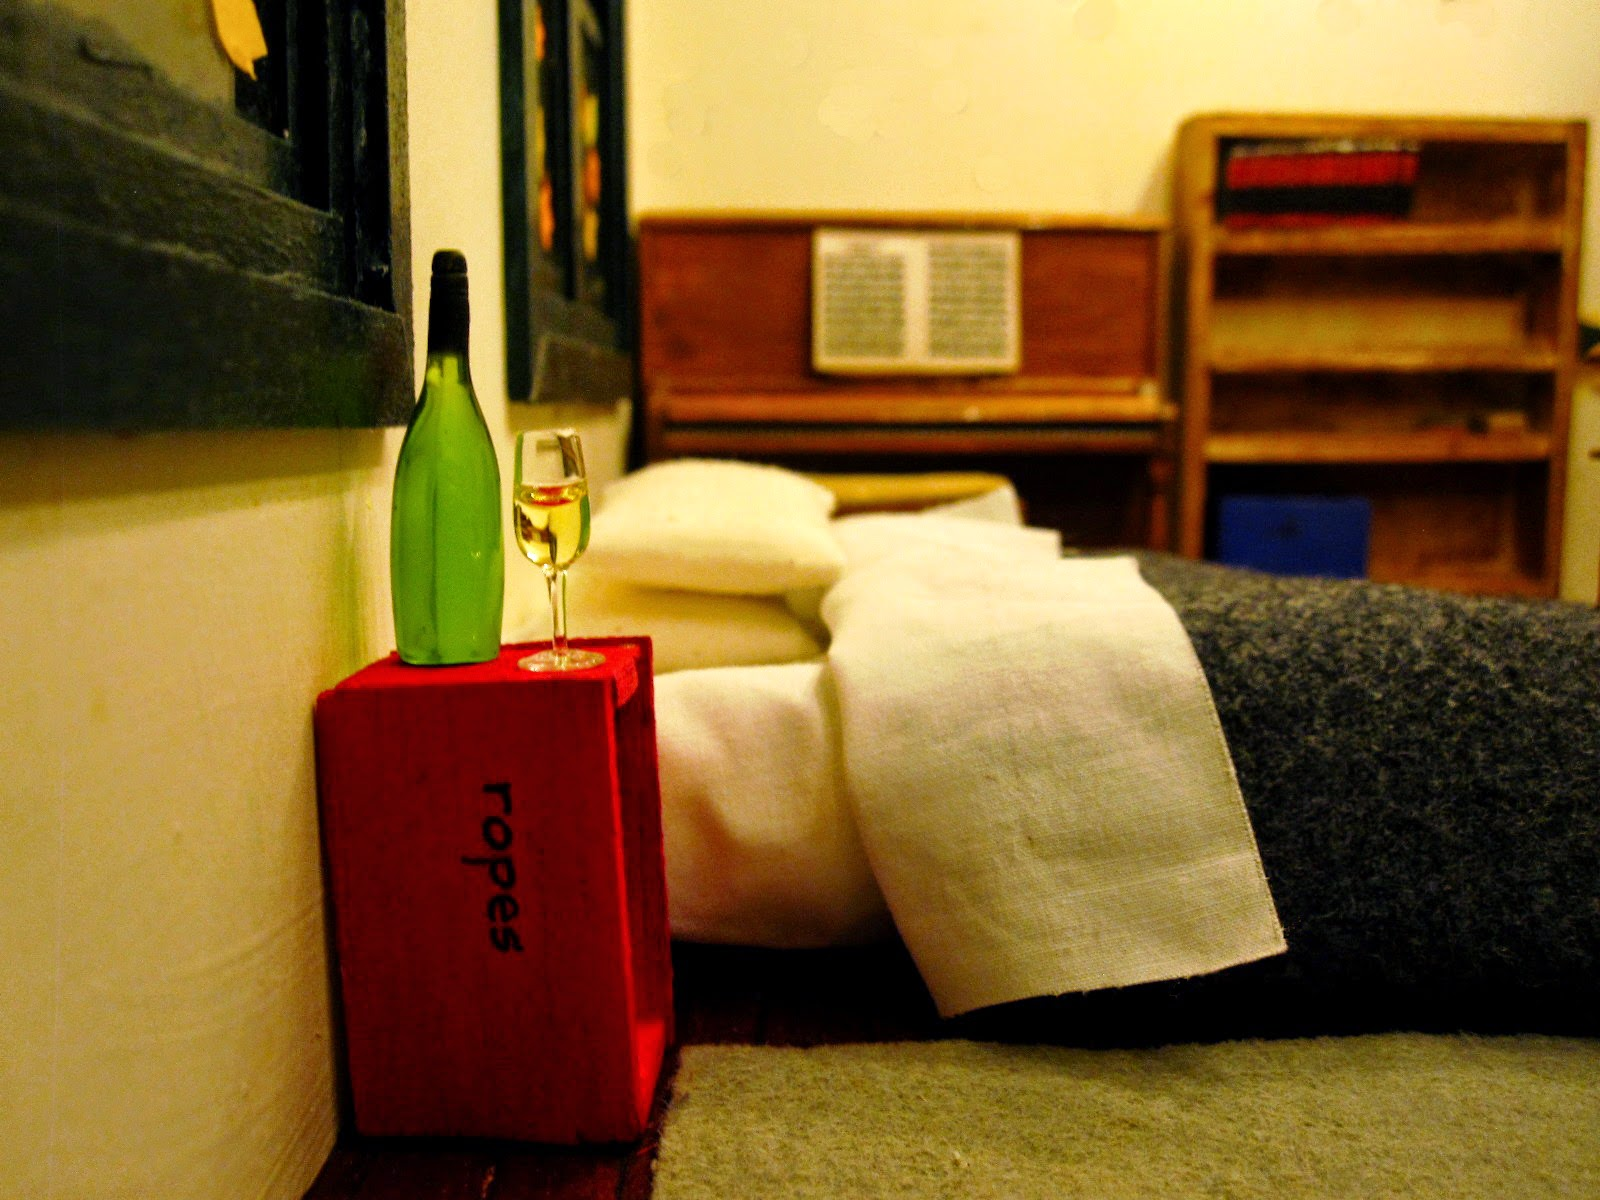 Miniature scene with a mattress and bedding on the floor, a red crate marked 'ropes' next to it with a glass and bottle of wine on it, and a piano in the background.